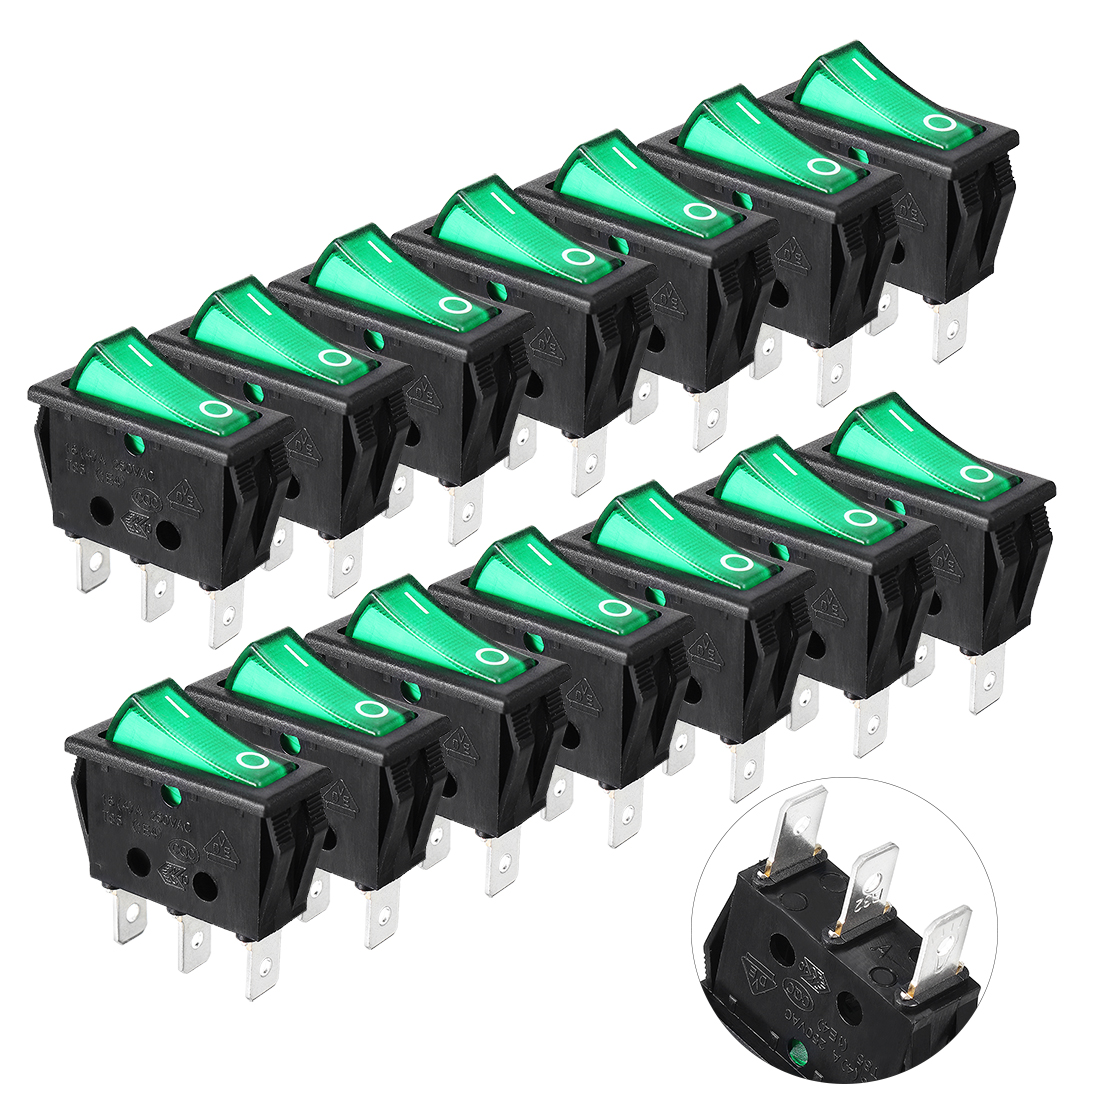 14pcs AC 125V-250V Lights On/Off Snap-In Panel Mount SPST Rocker Switch